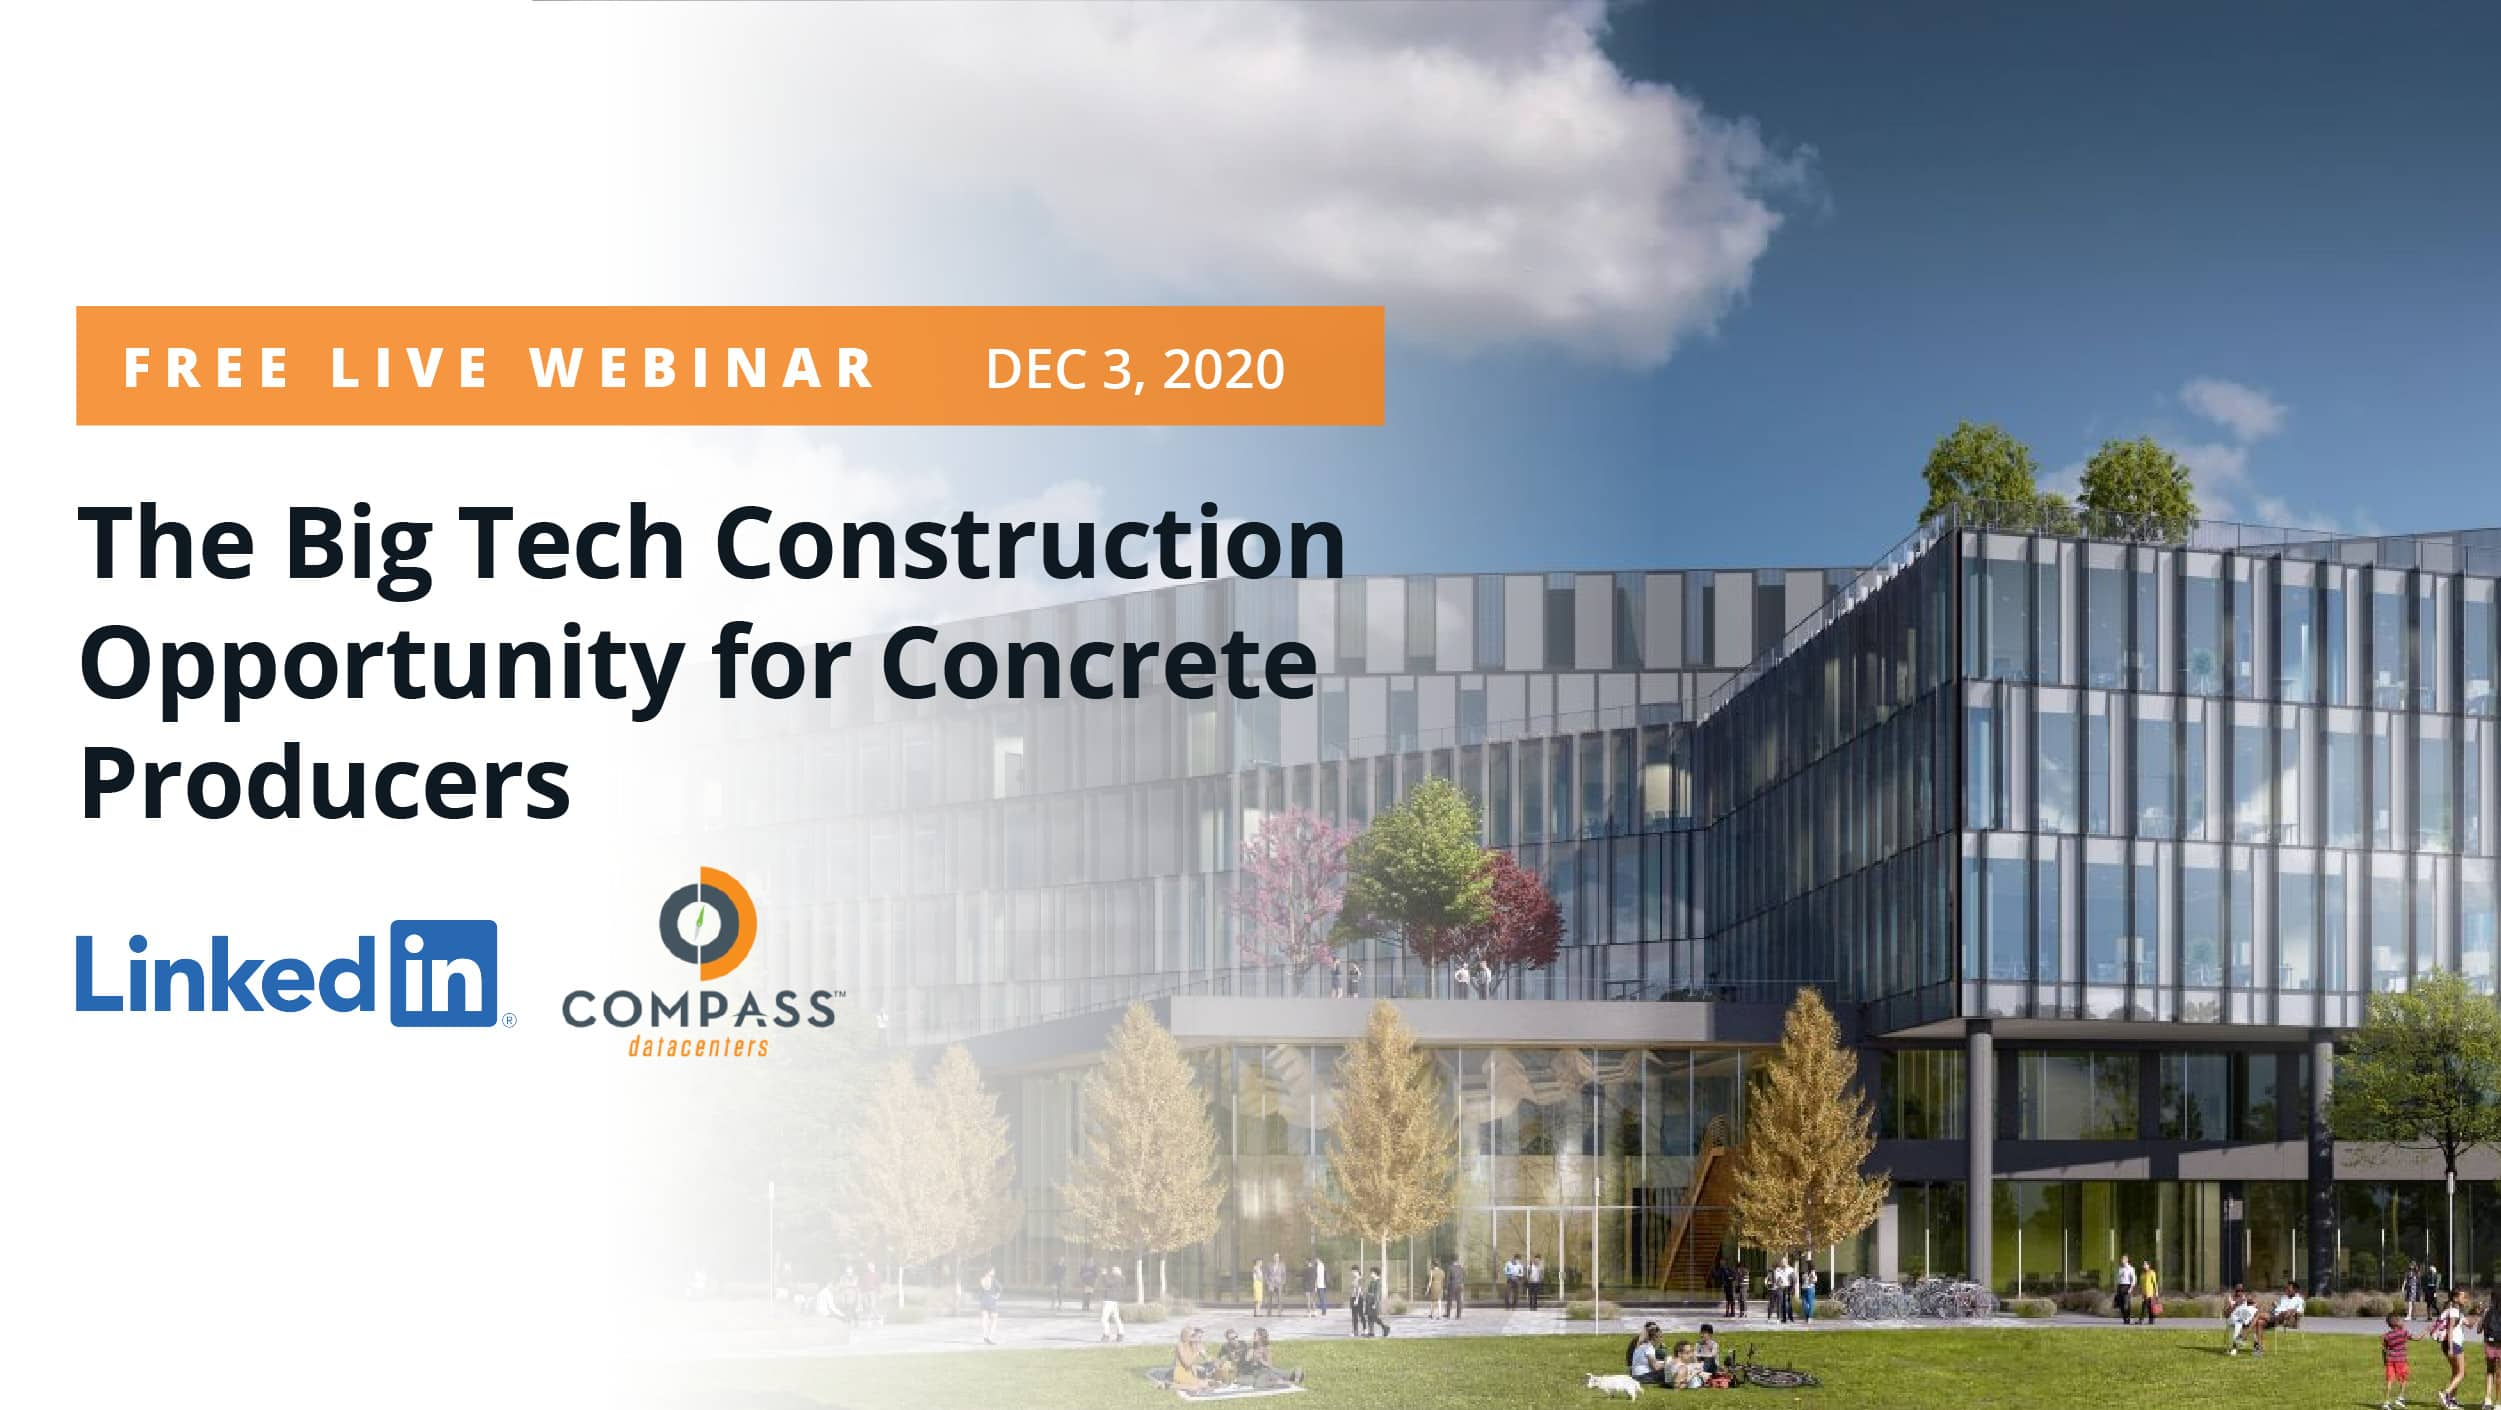 The Big Tech Construction Opportunity for Concrete Producers